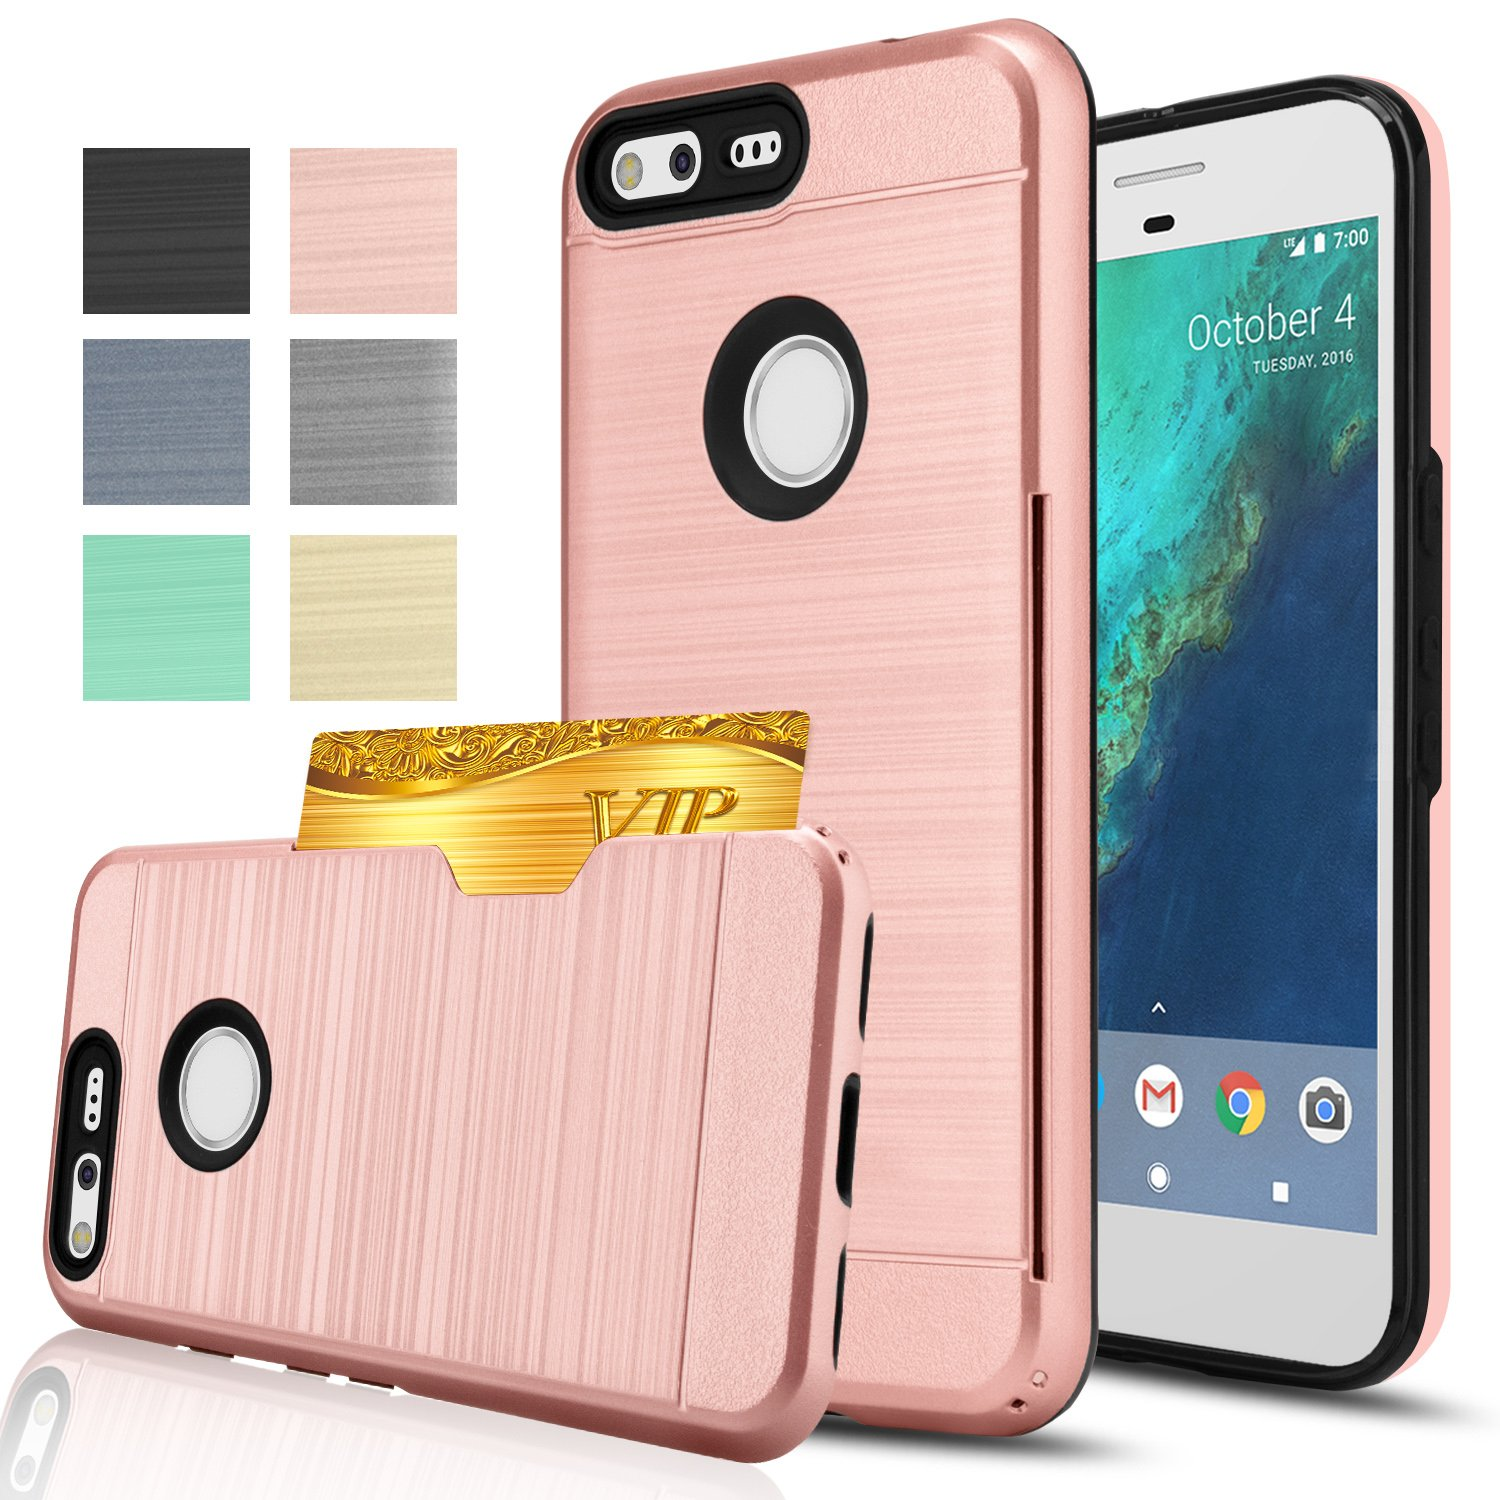 Google Pixel XL Phone Case,Anoke [Credit Card Slots Holder][Not Wallet]Hard Plastic PC TPU Soft Hybrid Shockproof Heavy Duty Protective Cover Case For Google Pixel Xl 2016 KC2 Rose Gold